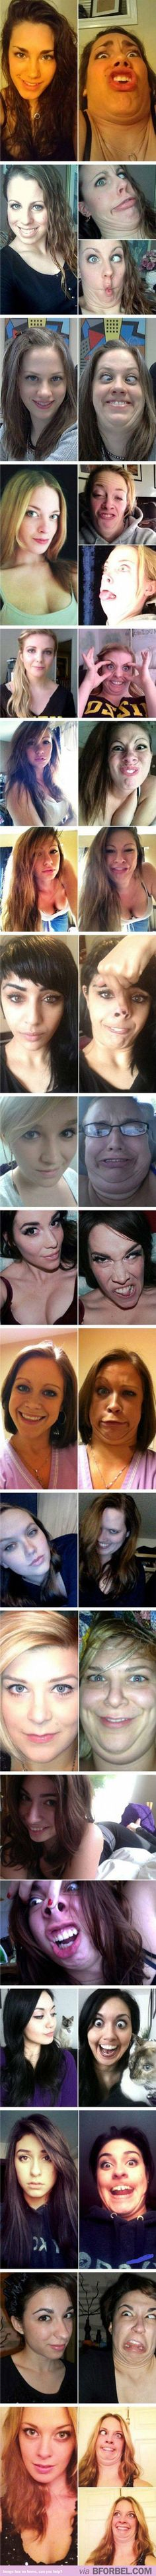 18 Pretty Girls Making Ugly Faces… I Can't Stop Laughing Help